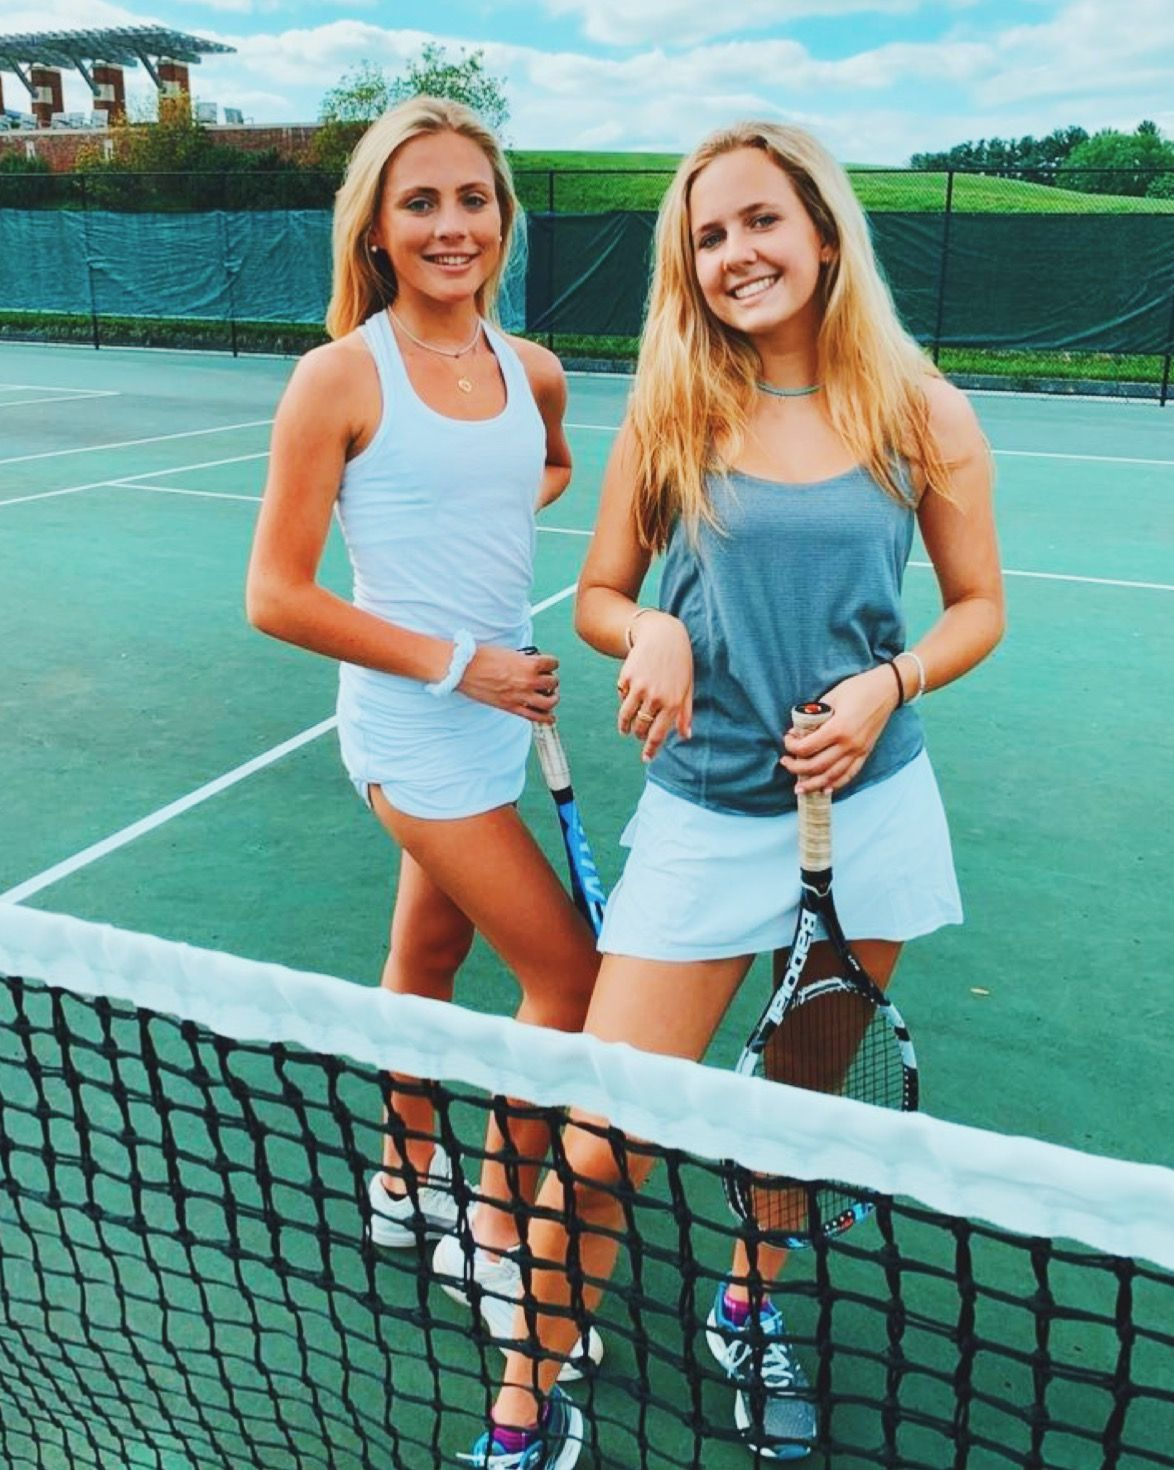 Girl S Tennis In 2020 Tennis Pictures Tennis Clothes Best Friend Pictures